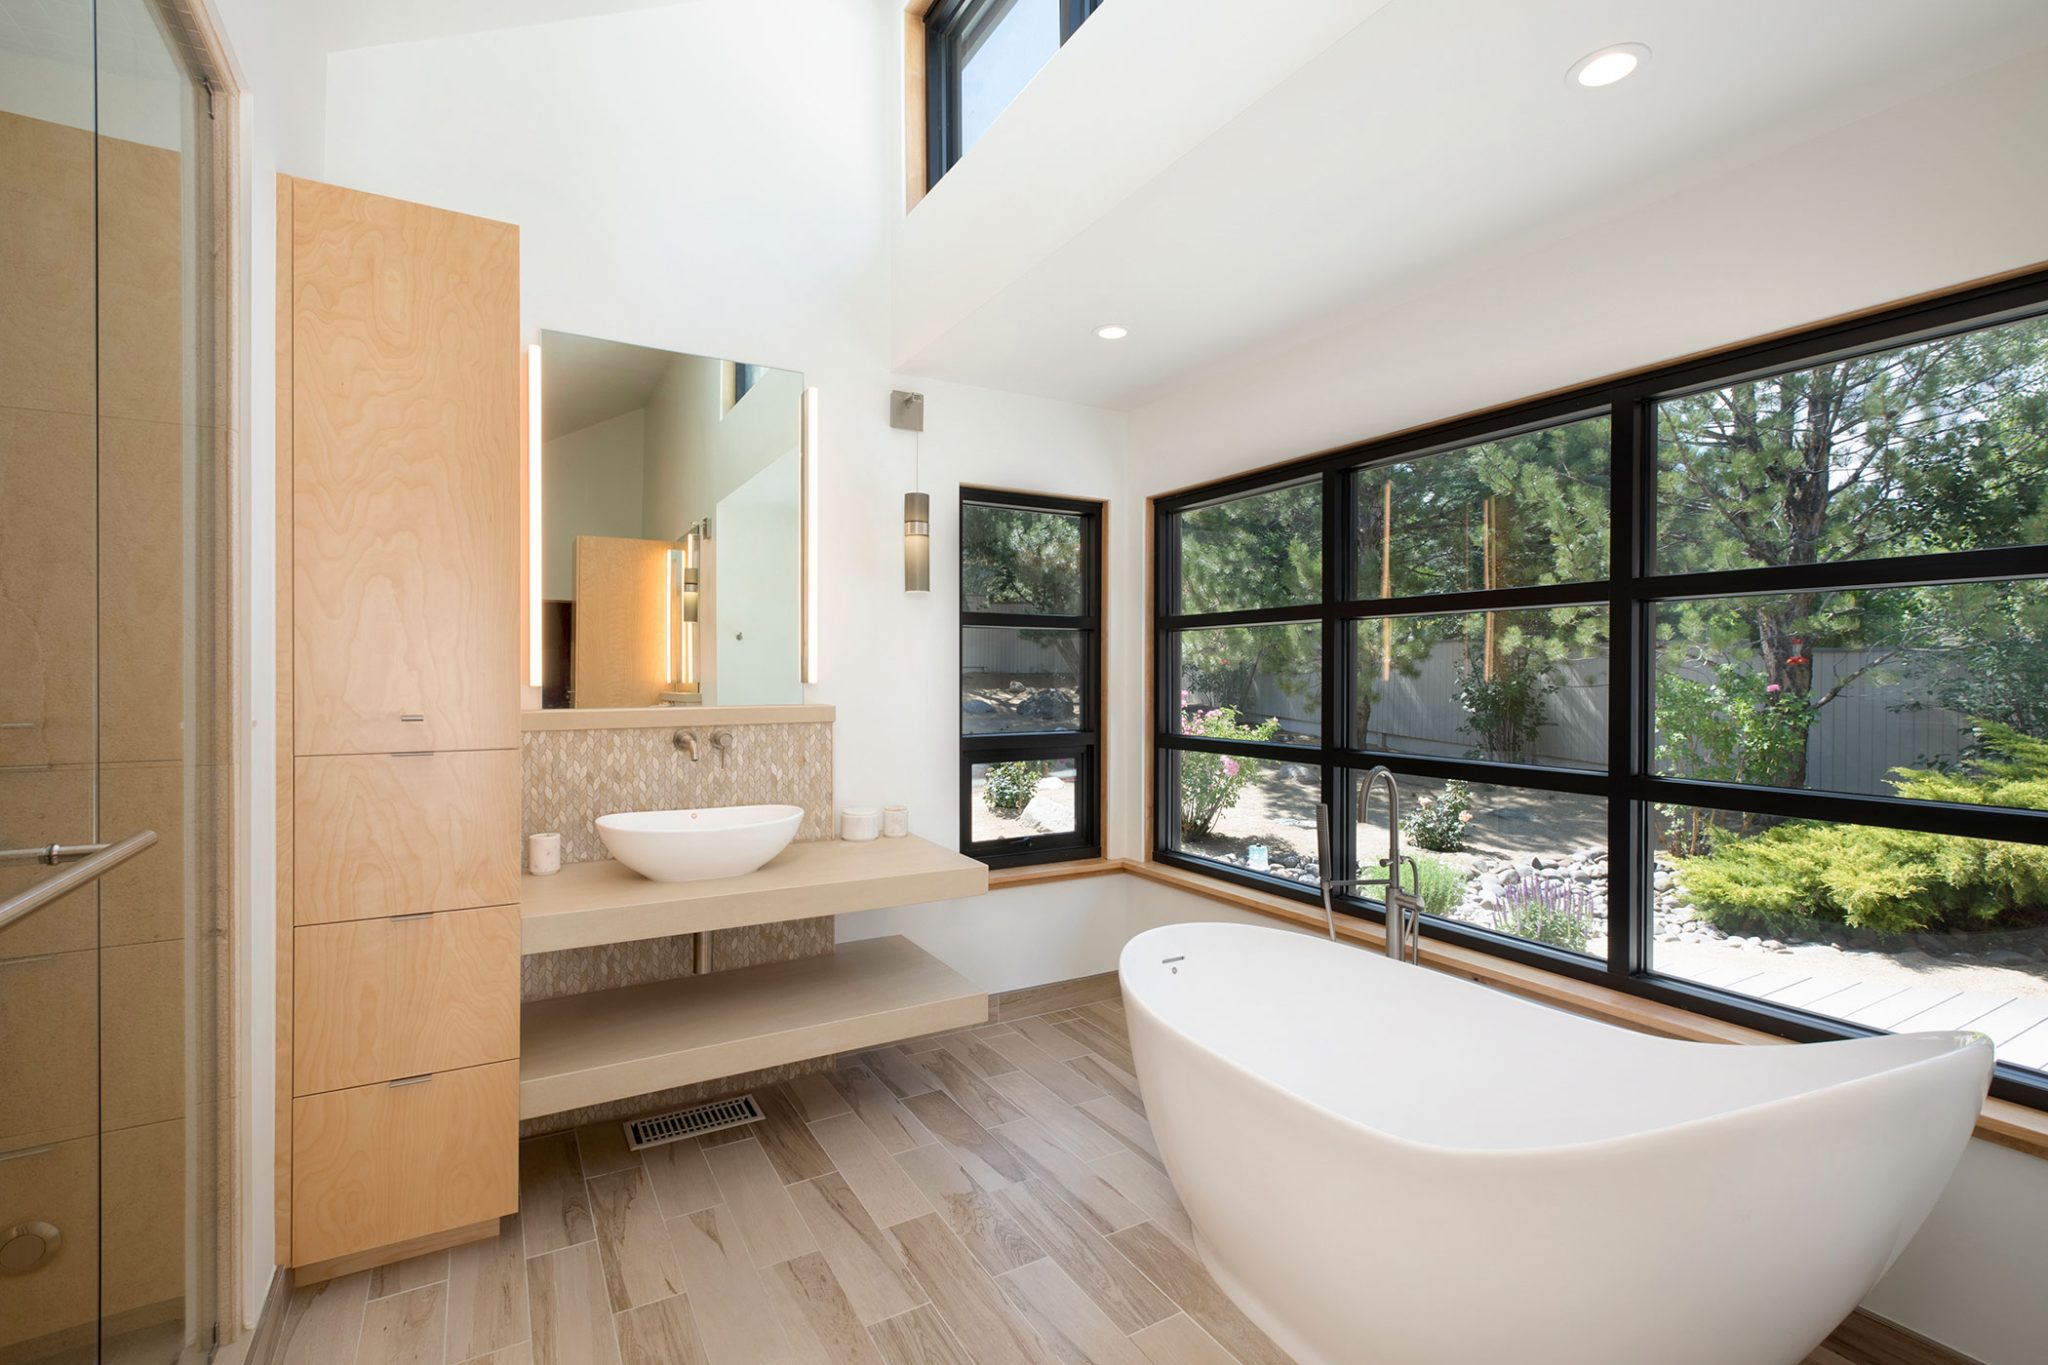 """Light Woods in Bathrooms   In a bath, simplicity is key. Light woodscan soften and brighten a bathroom design, usheringin natural materials without slipping backward into the heavy wood vanities of earlier decades, and helping to build a relaxing, immersive oasis.""""Today's bathroom is created for a relaxing experience in a peaceful atmosphere: planned for a ritual,"""" says Marcio Decker ofAspen Leaf Interiors, Incin Truckee, California.""""Light woods and light surfaces with natural textures and grain, lime-washed or cerused, will add to the visual portion of the experience. Using rift-cut white oak, bleached walnut, birch, and other light-toned woods in a bathroom application can magnify smaller spaces, bounce desired light back into the room, and render an easy, simple ambience."""""""